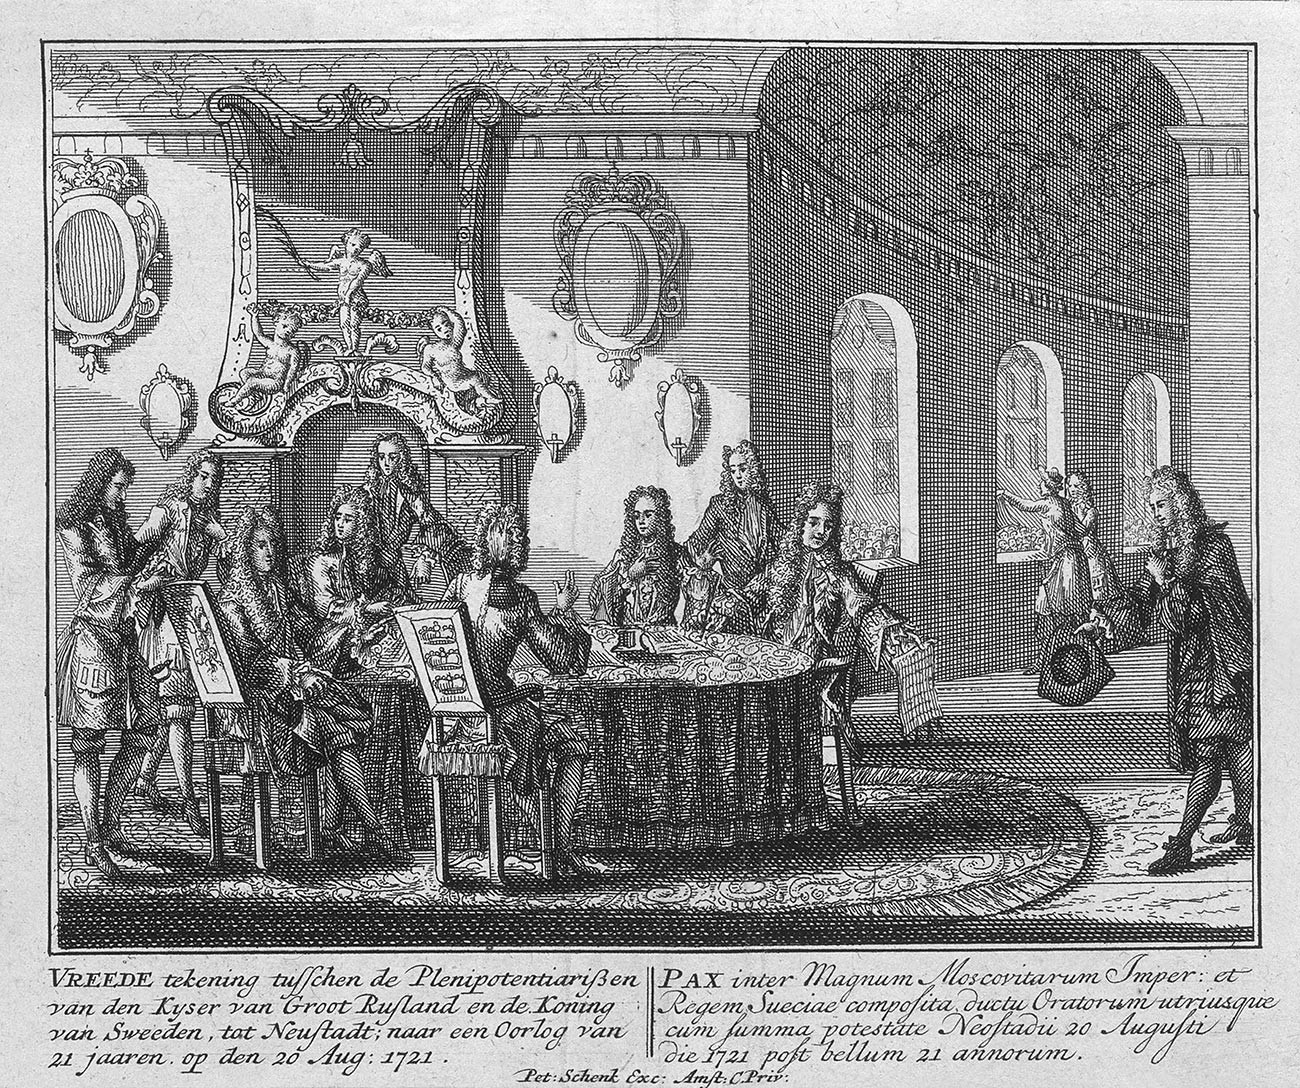 Conclusion Of The Peace Treaty Of Nystad On 20 August 1721.